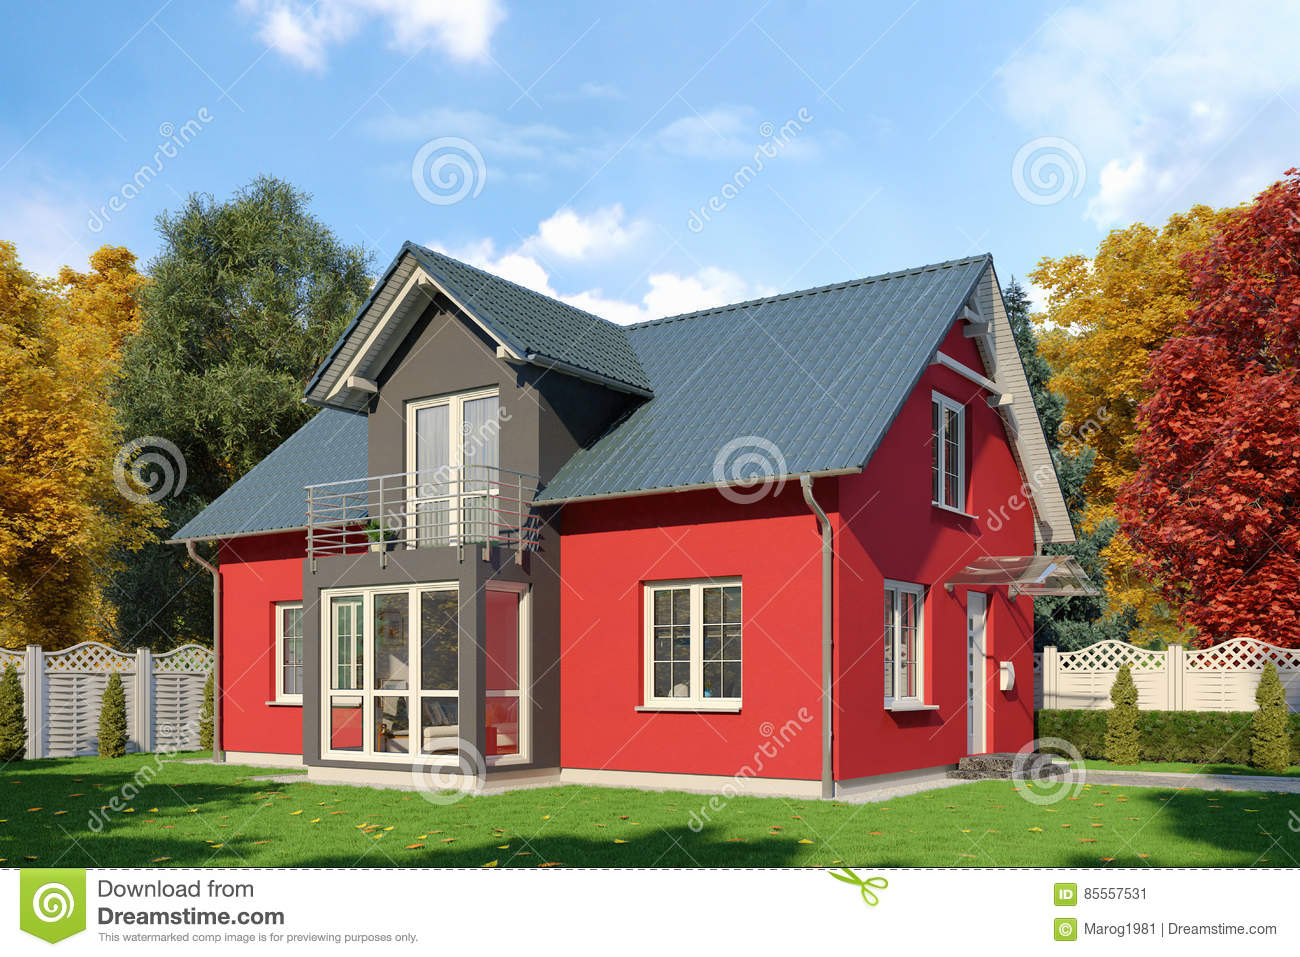 3d - Einfamilien- haus- Herbst - Tag